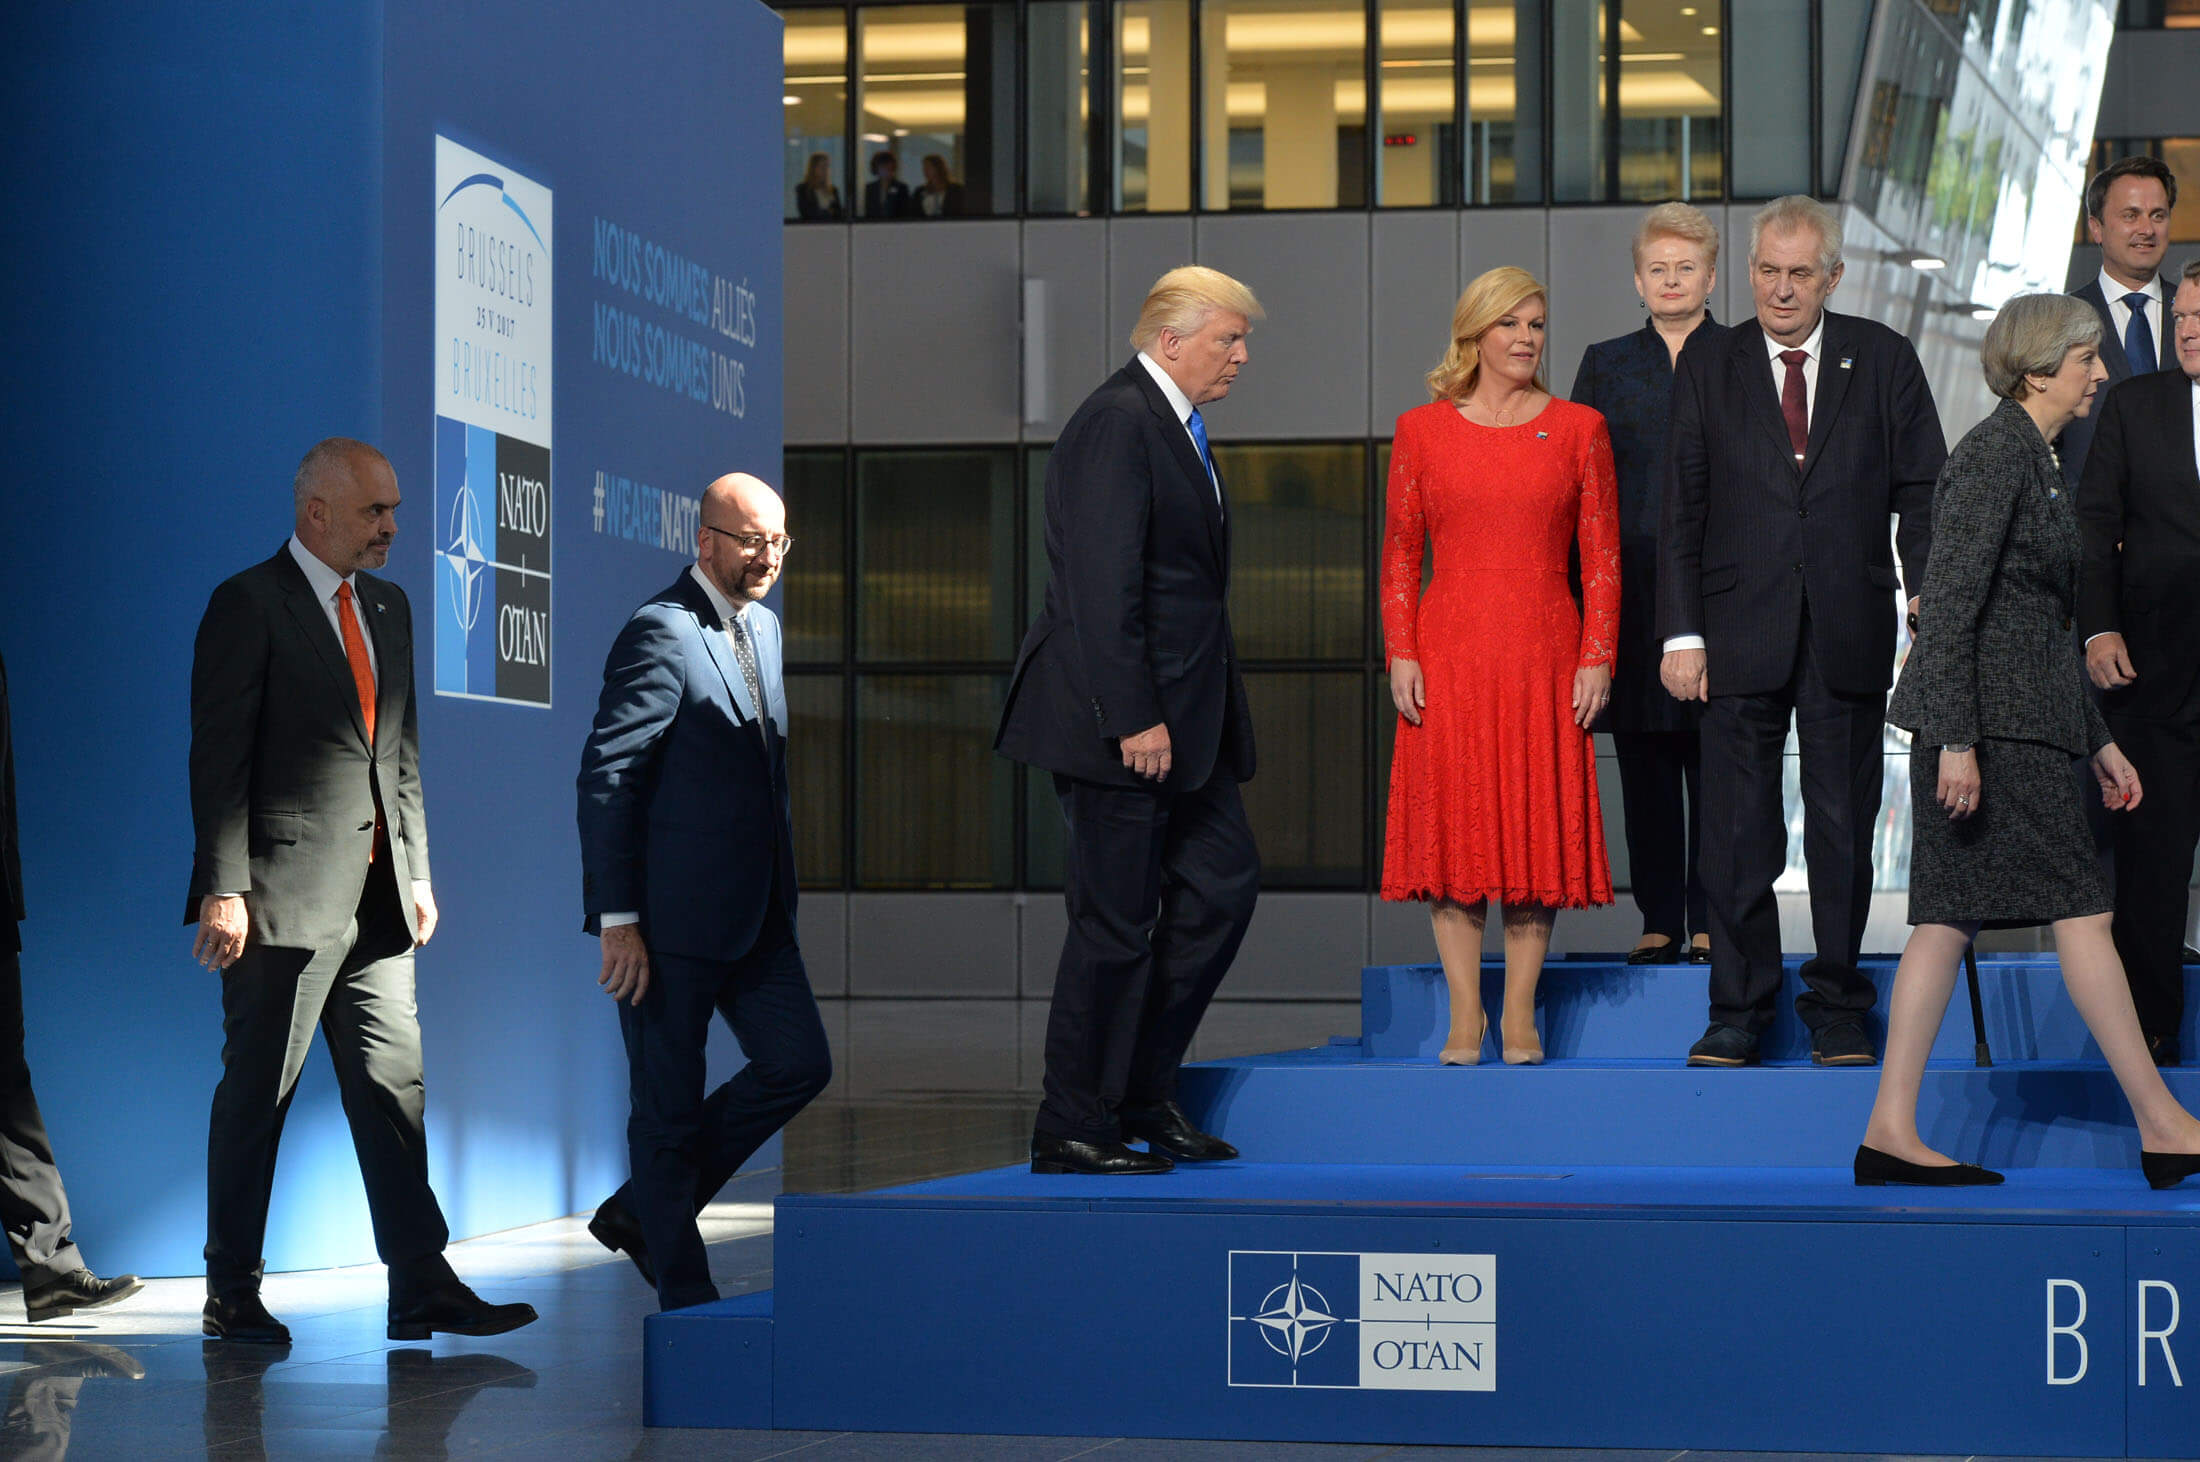 Janssens-Family portrait of NATO Heads of State and Government - Meeting of NATO Heads of State and Government in Brussels